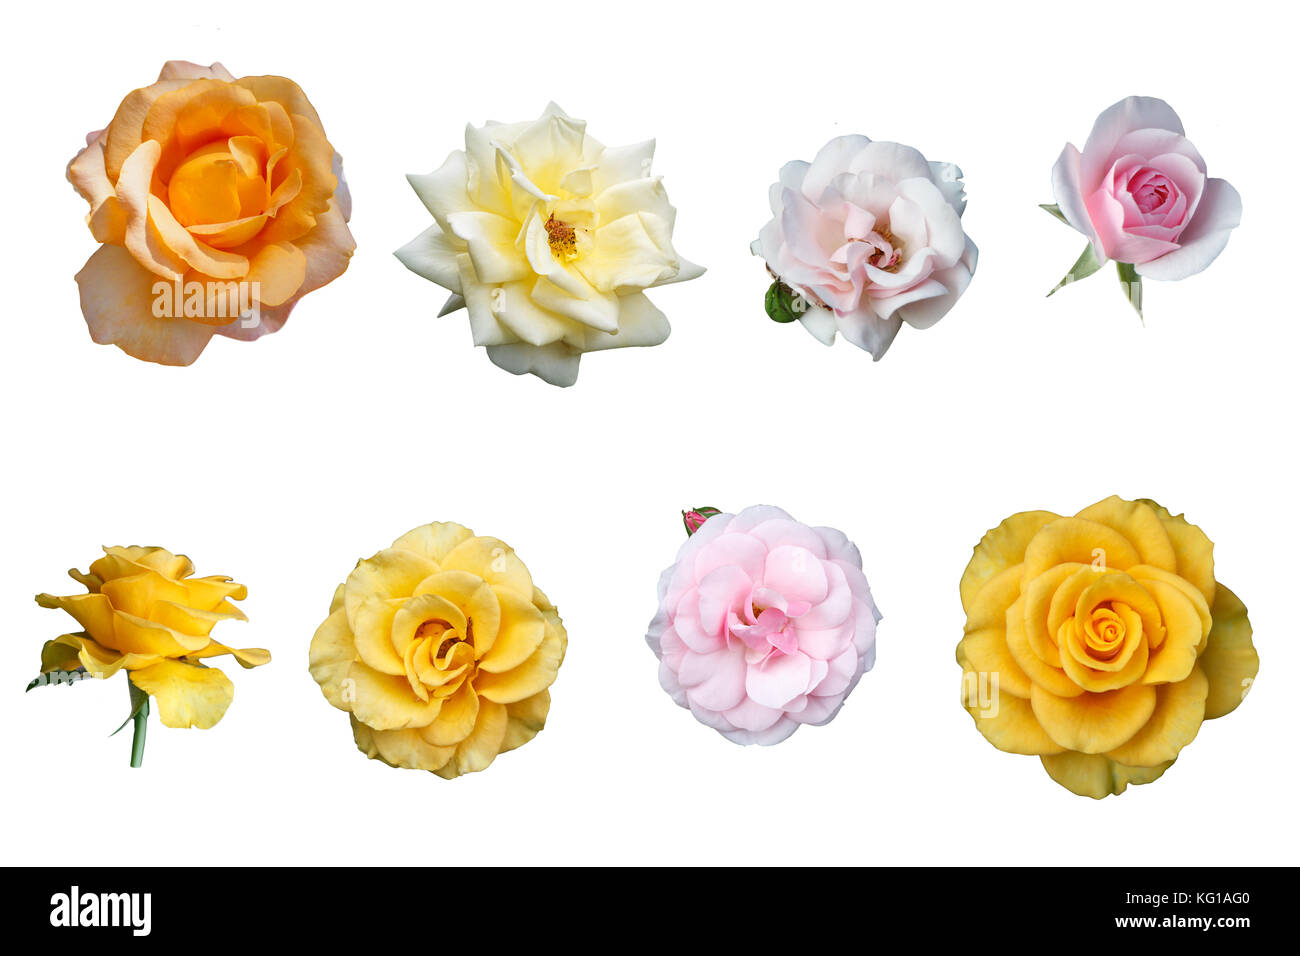 Multicolored isolated beautiful roses on a white background - Stock Image